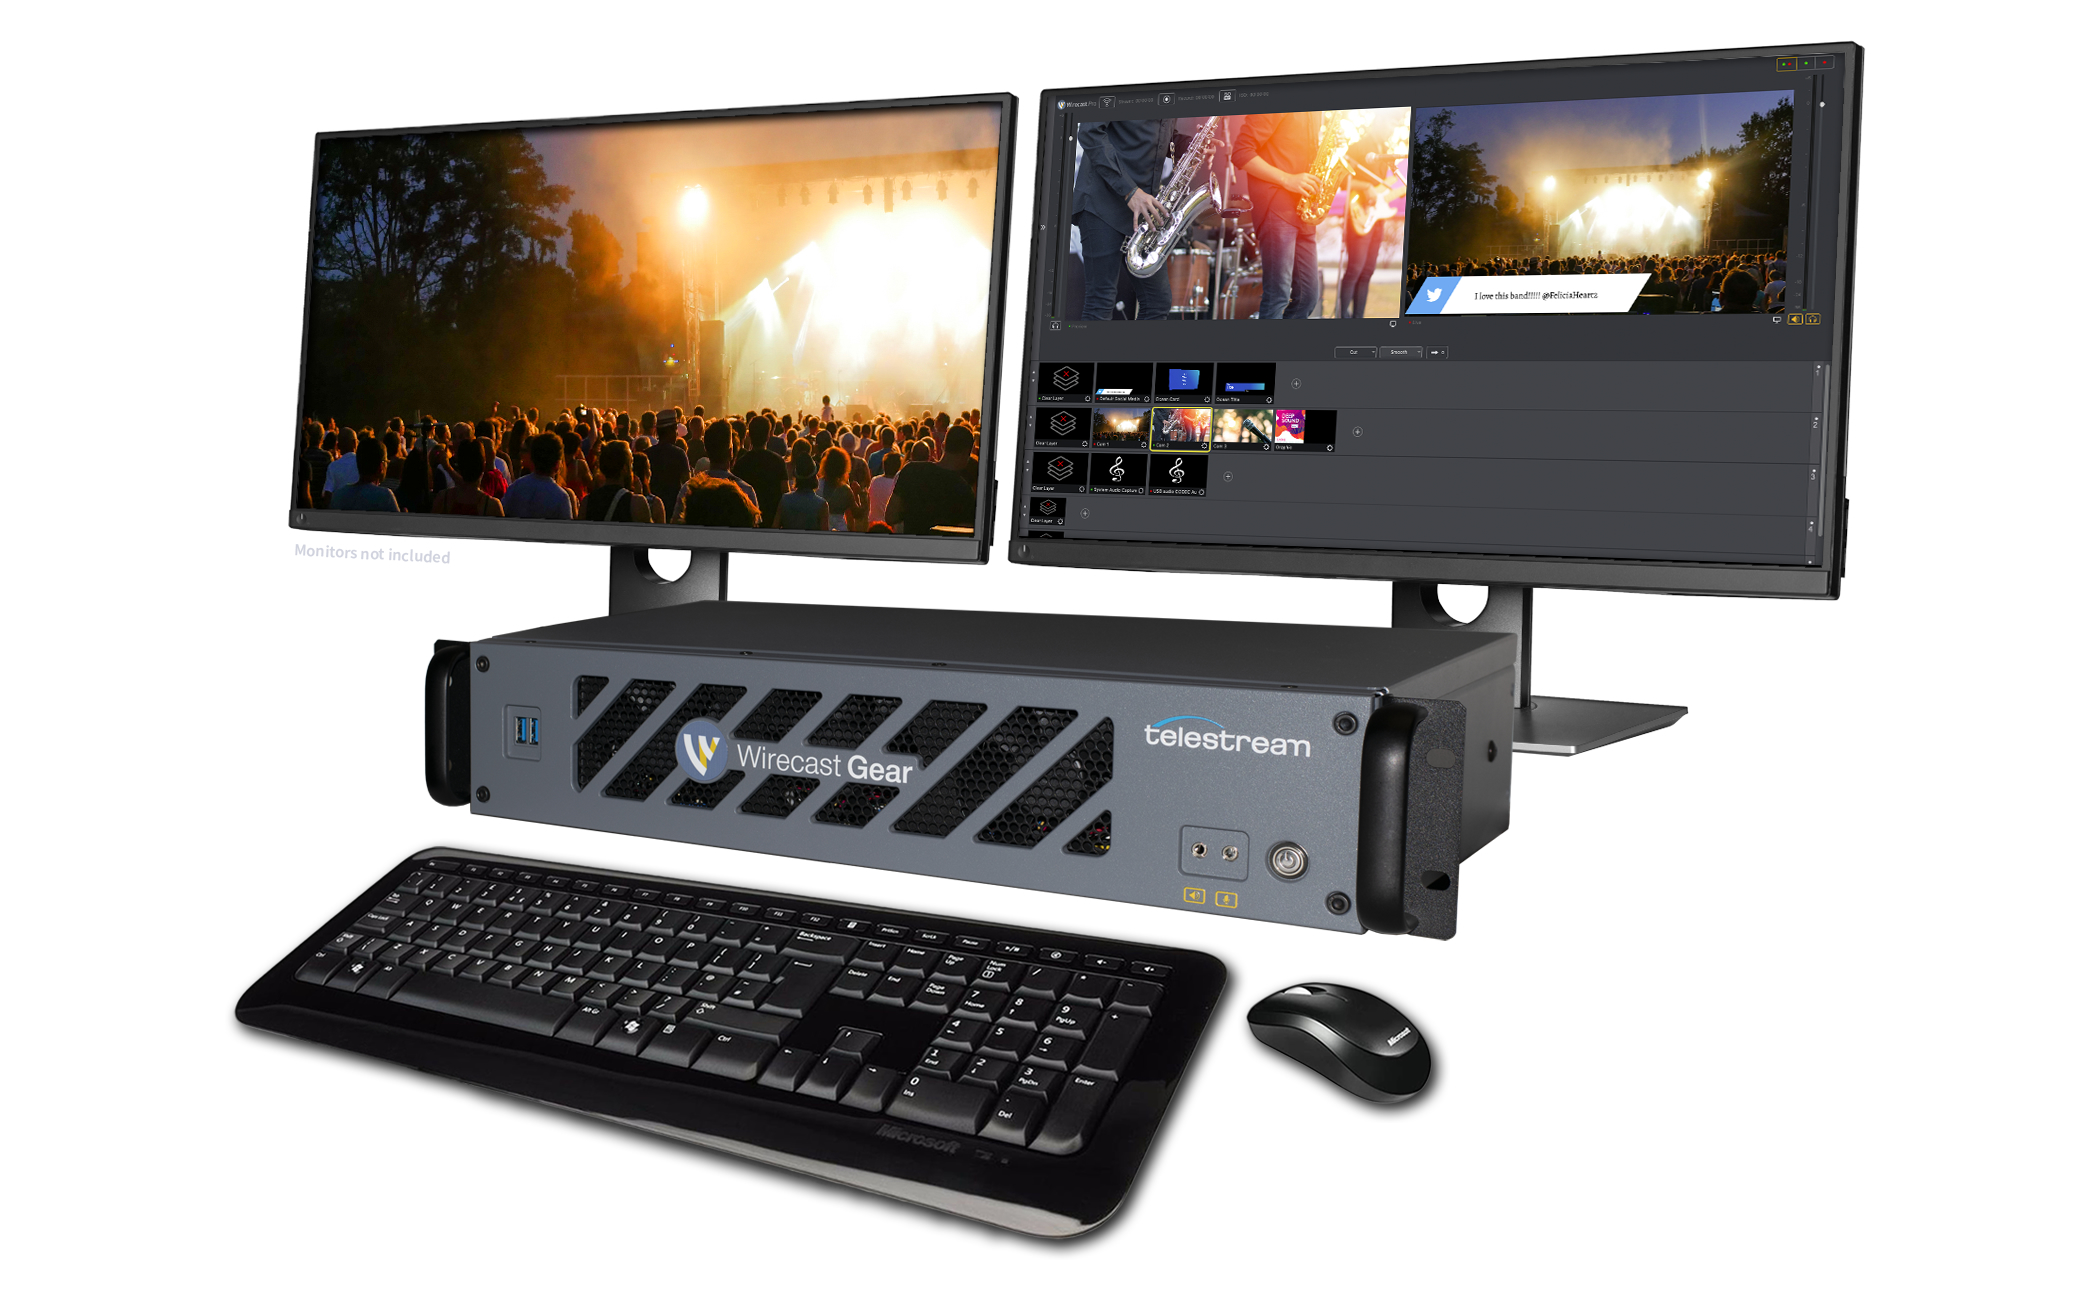 Wirecast Gear all-in-one live video streaming production system